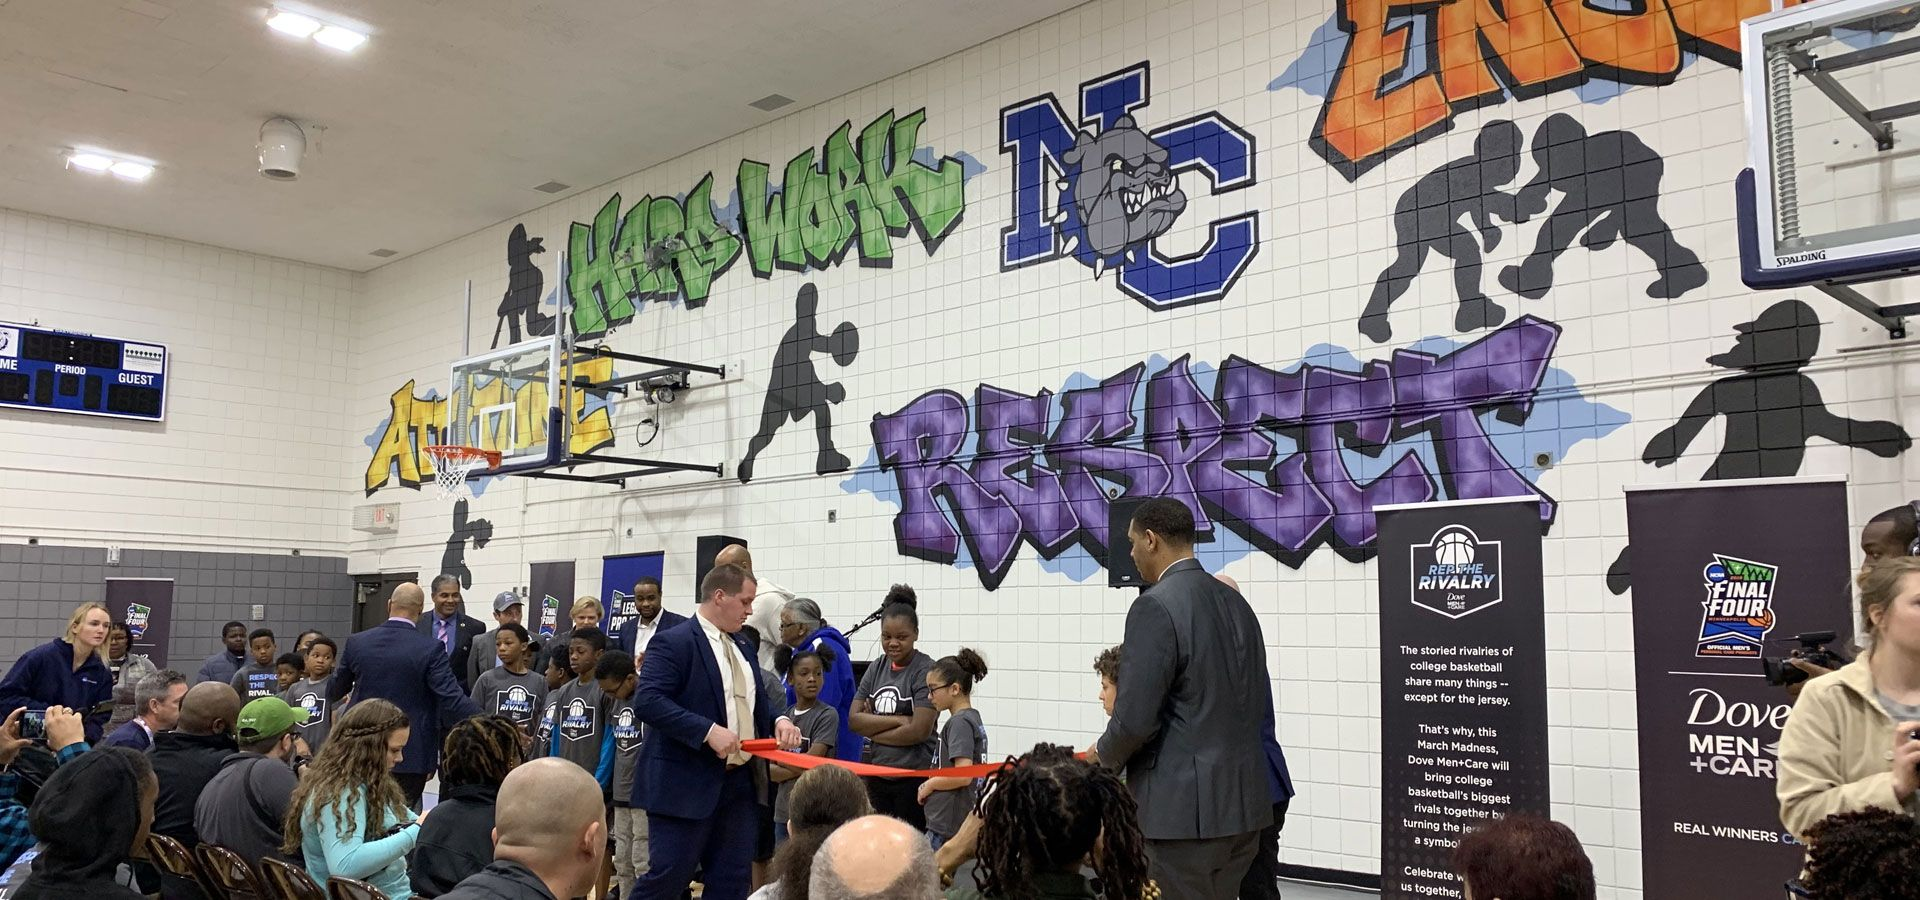 Several people sitting and standing around a ribon-cutting. A celebration of a new decorative mural with young people playing sports and the words attitude, hard work, respect, encouragement, success decorating a rec center basketball court